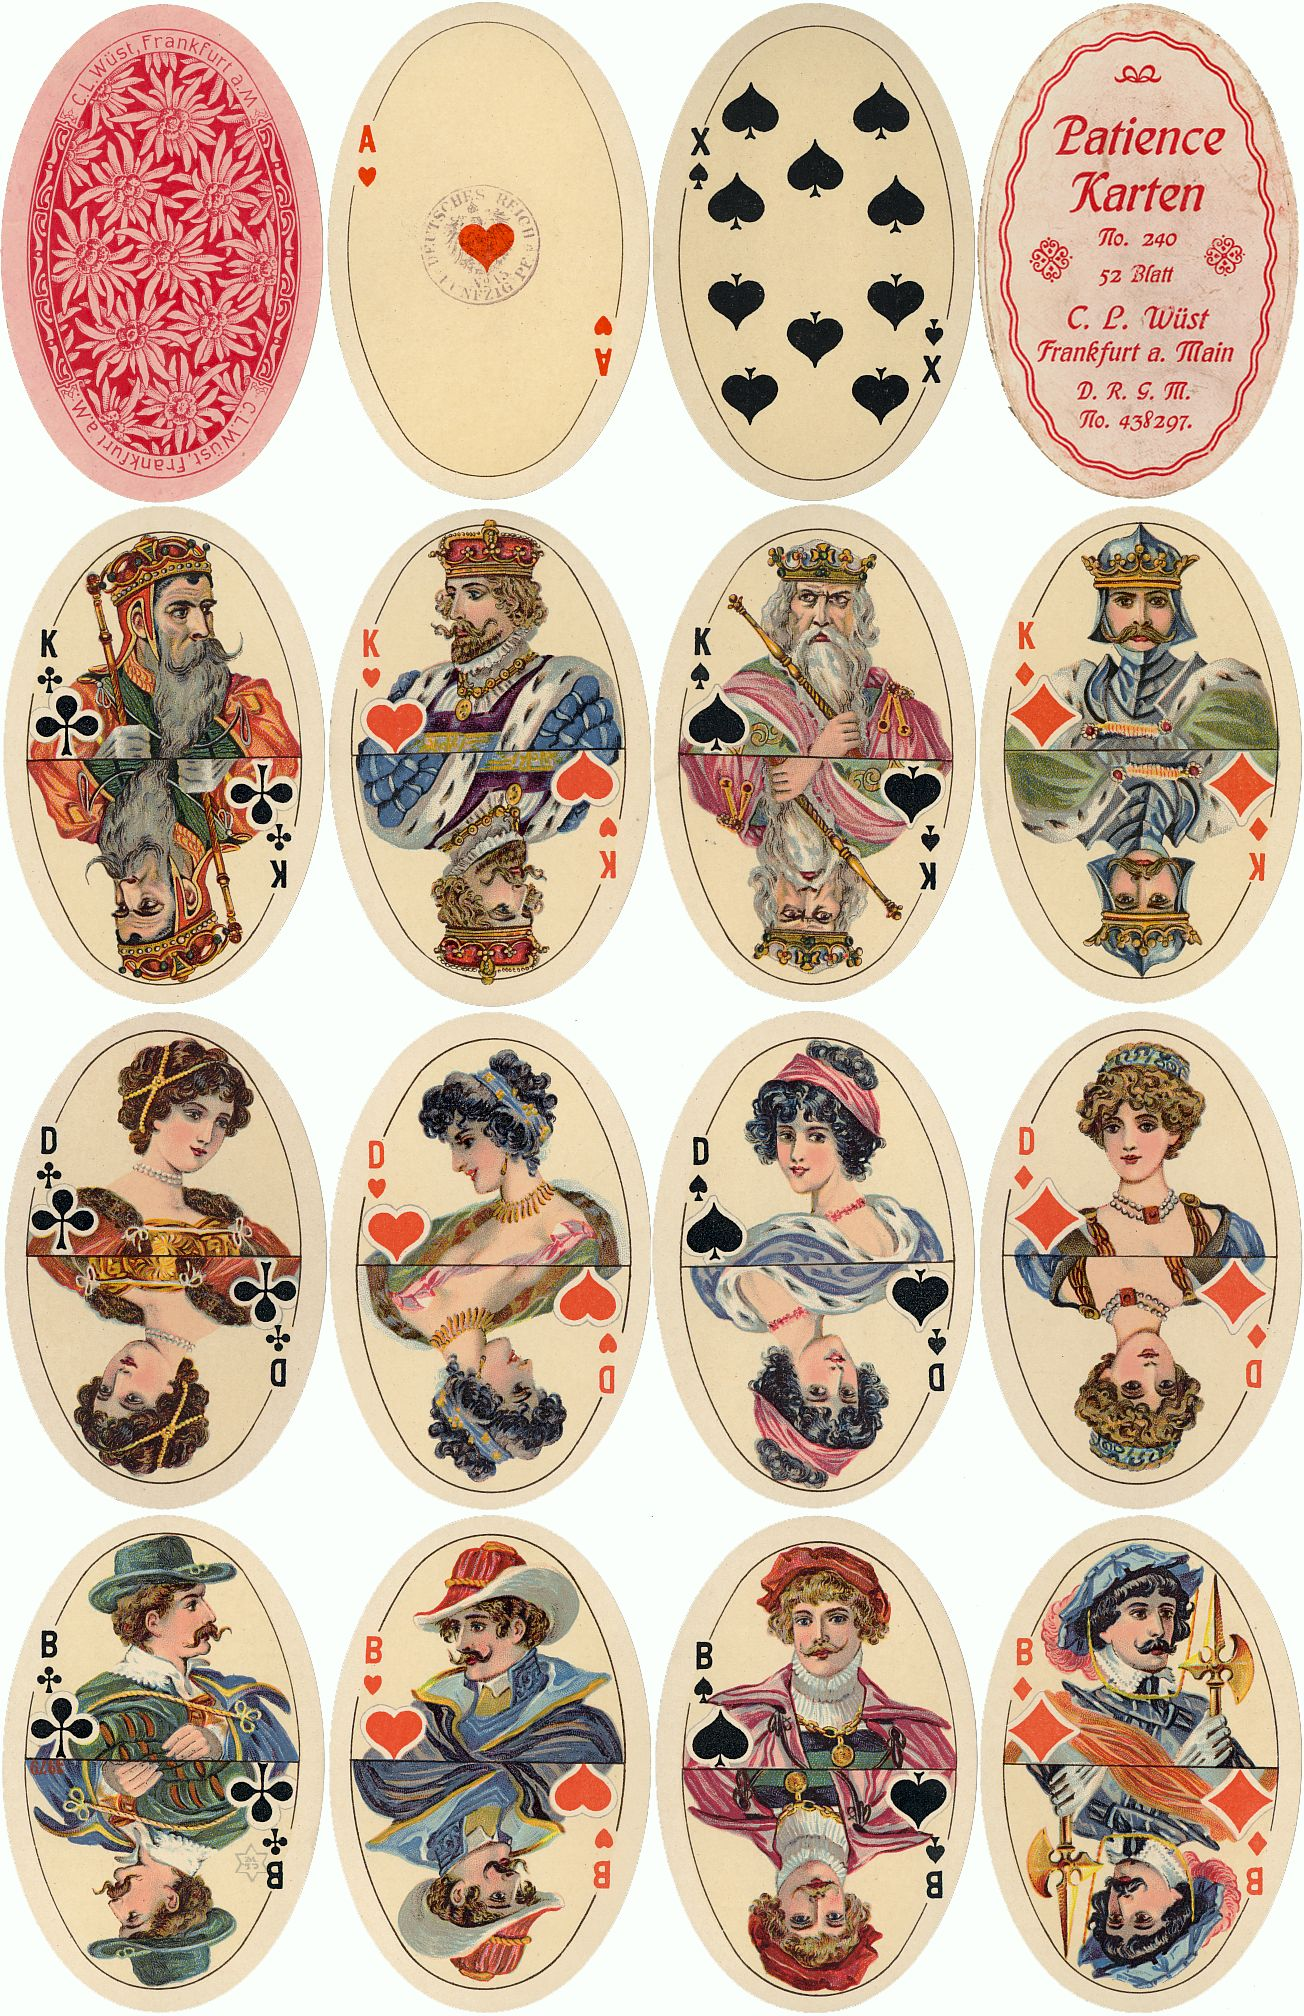 Oval Patience playing cards No.240 published by C. L. Wüst, Frankfurt am Main, Germany, c.1910-16